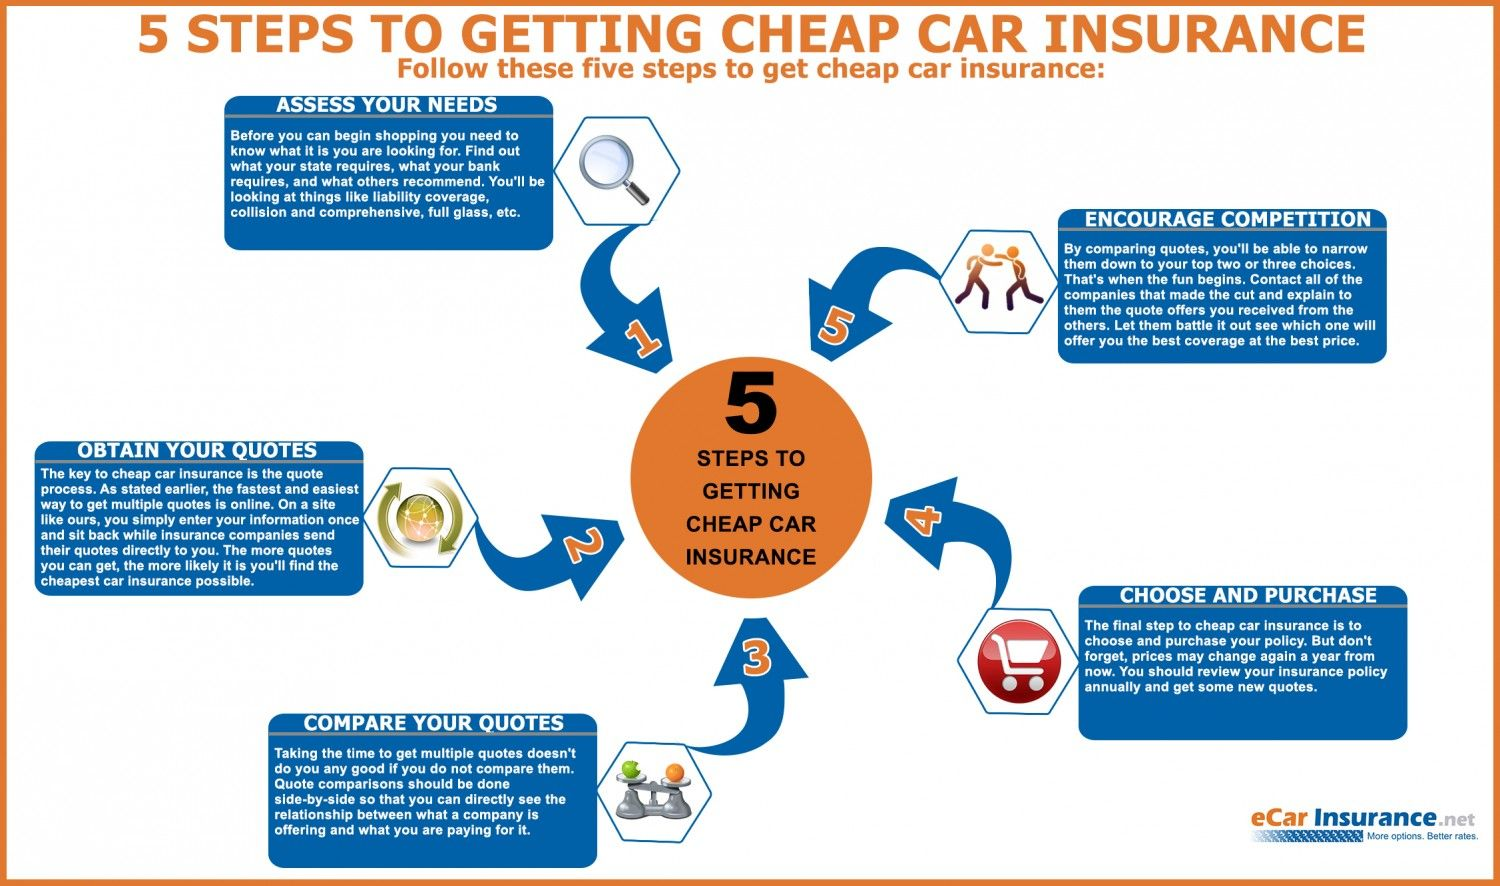 Car Insurance Quotes Comparison 5 Steps To Getting Cheap Car Insurance #infographic  Car And Motor